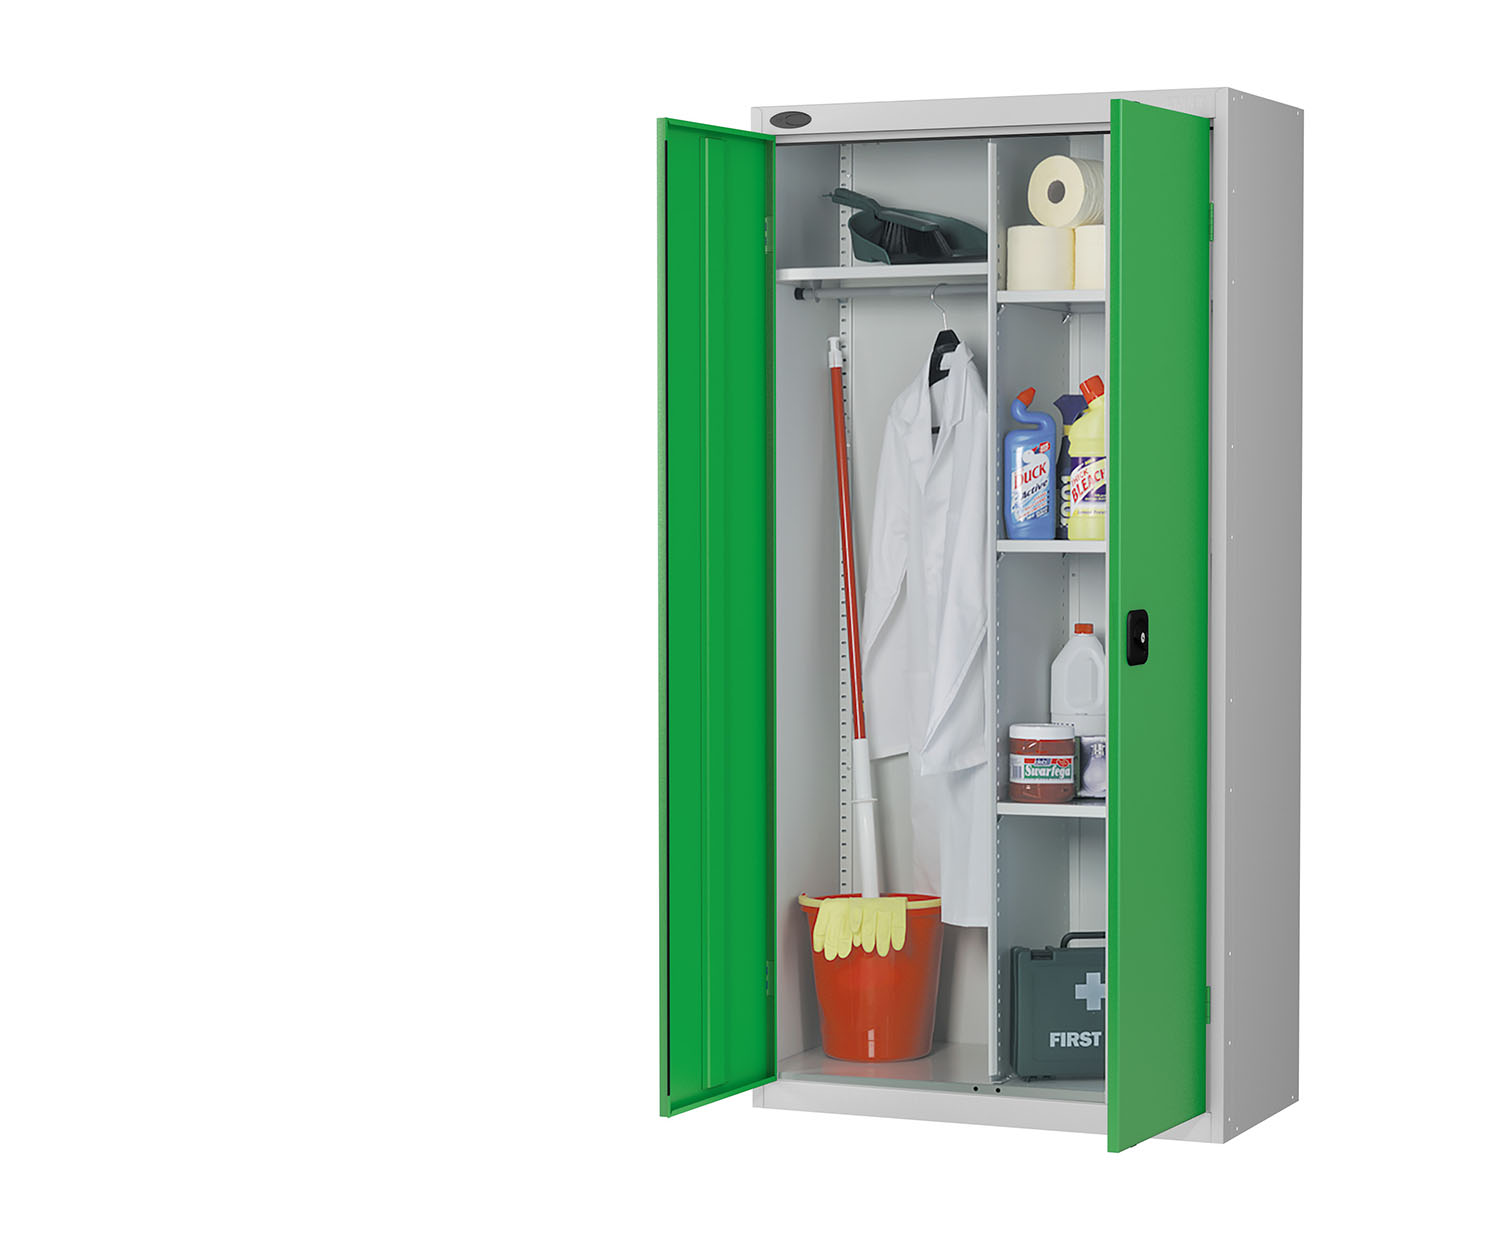 Probe cupboard wardrobe green